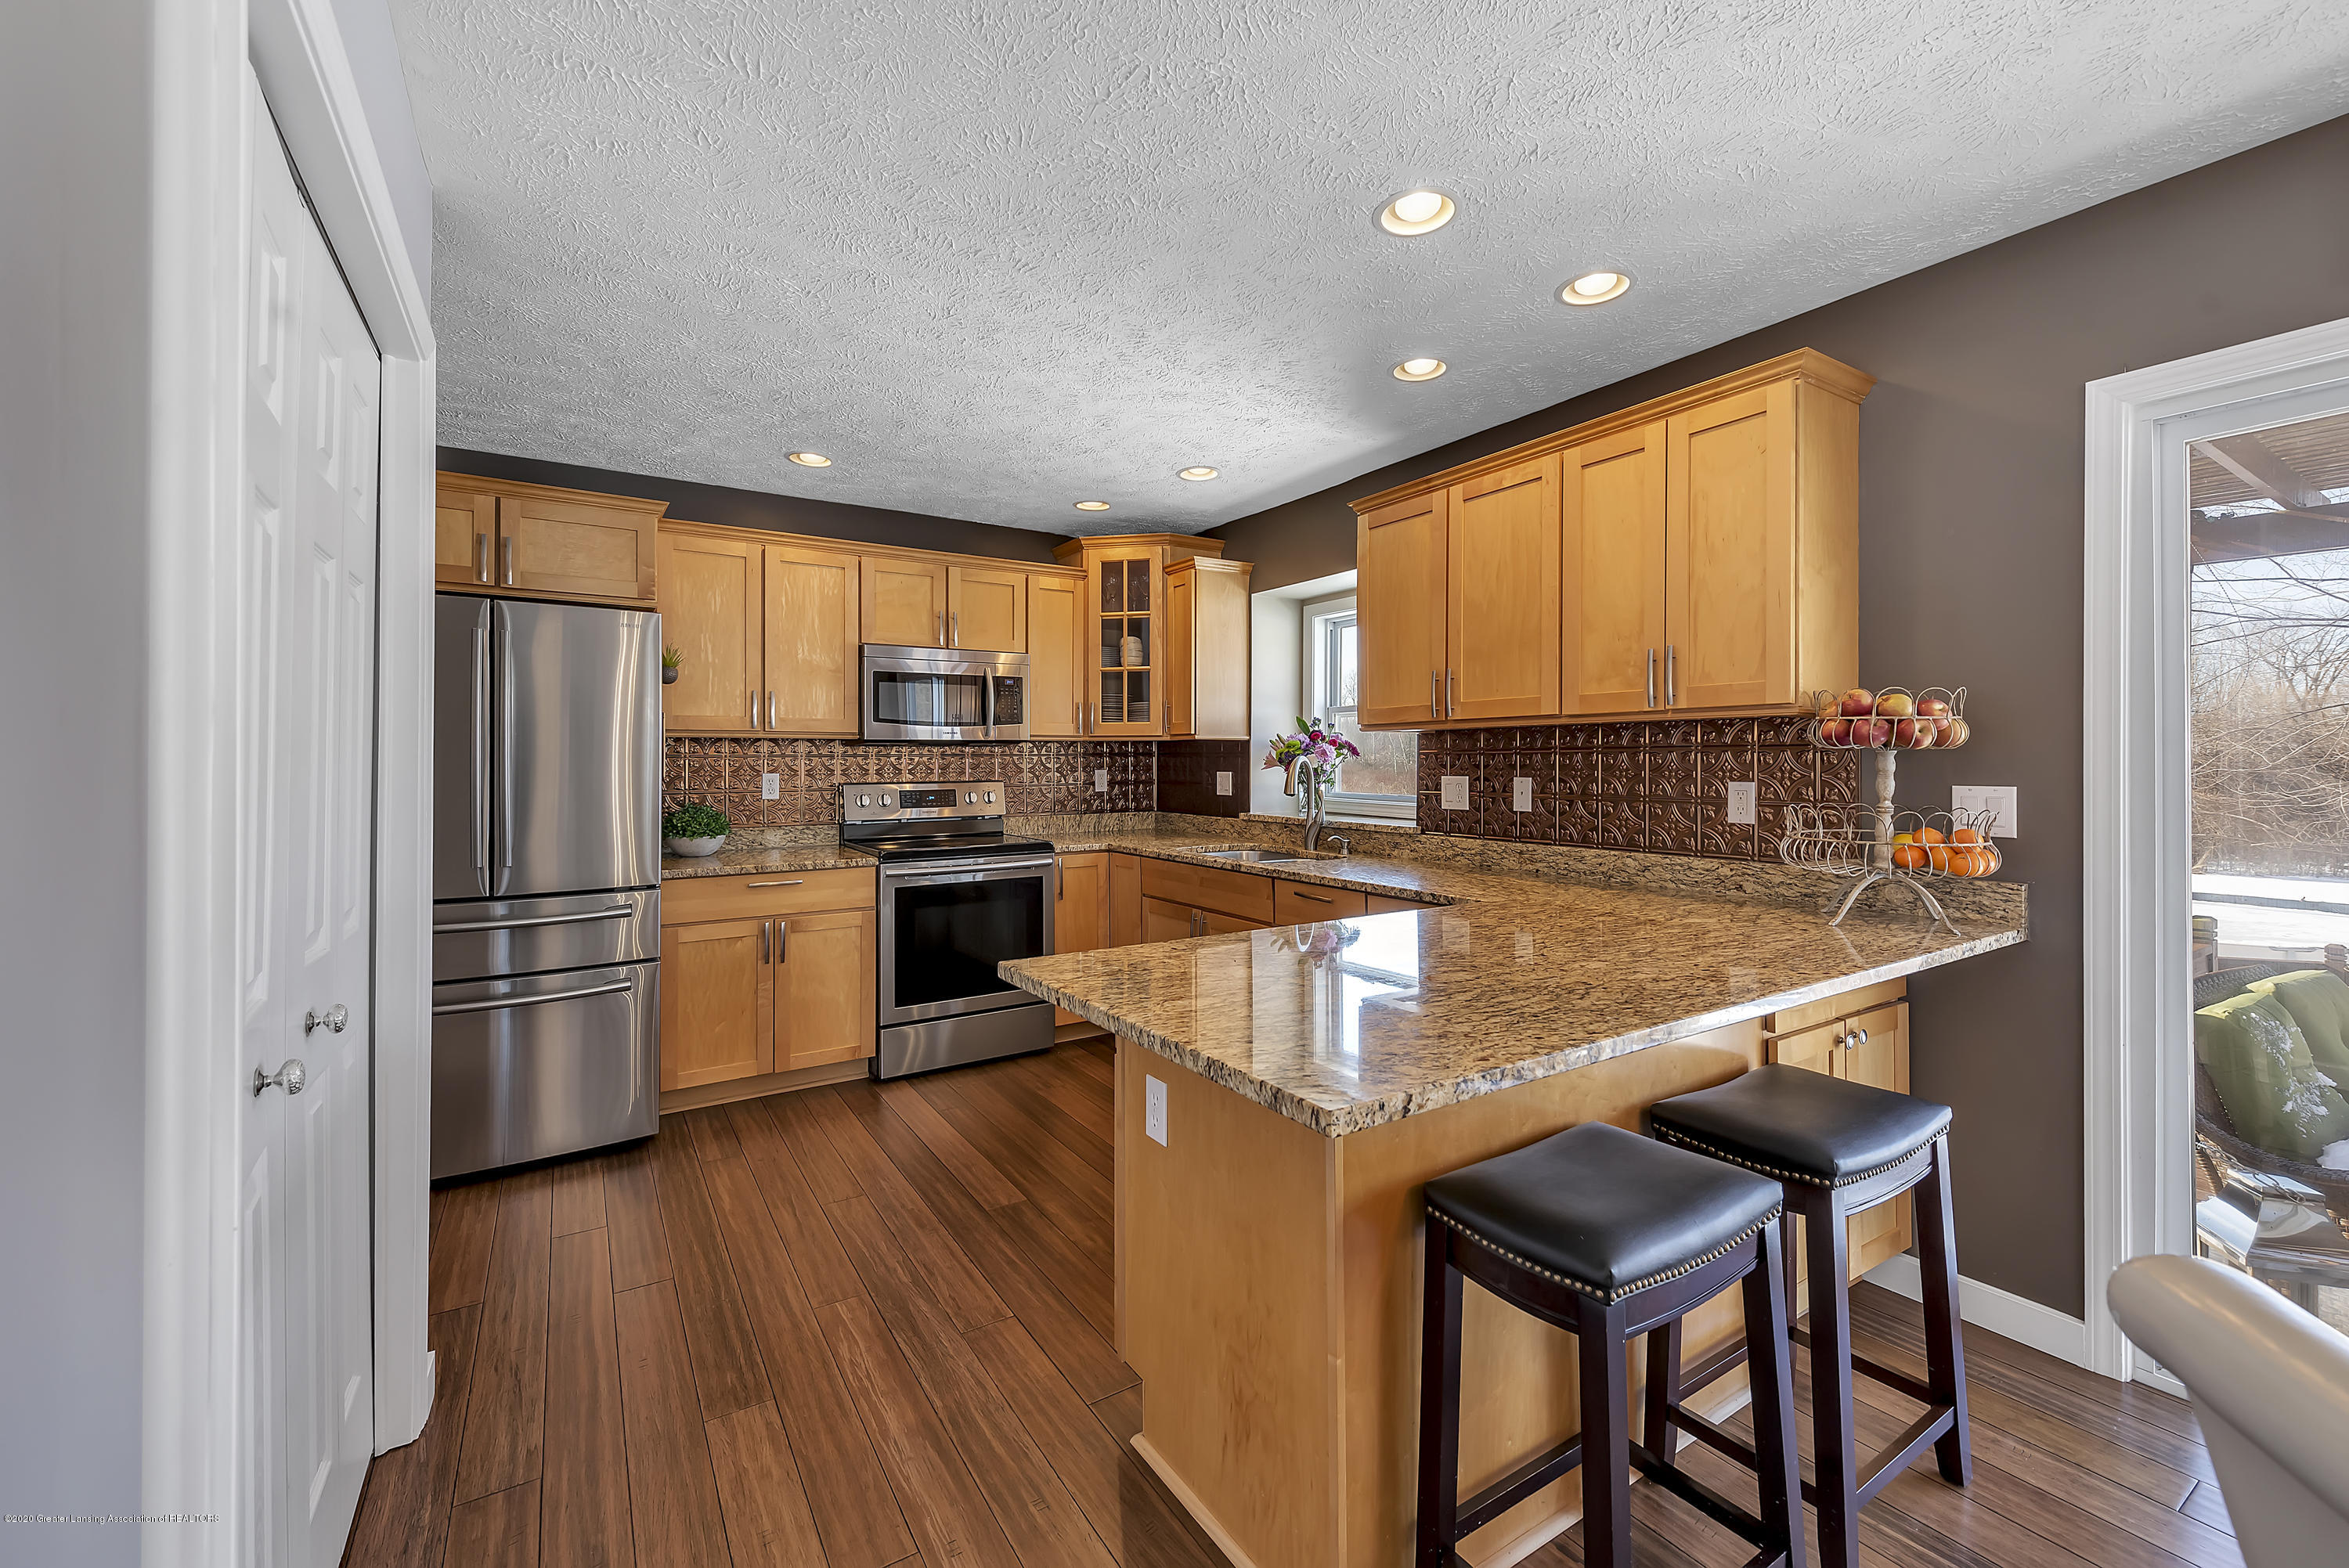 5206 Witherspoon Way - 5206-Witherspoon-Way-WindowStill-Real-Es - 18